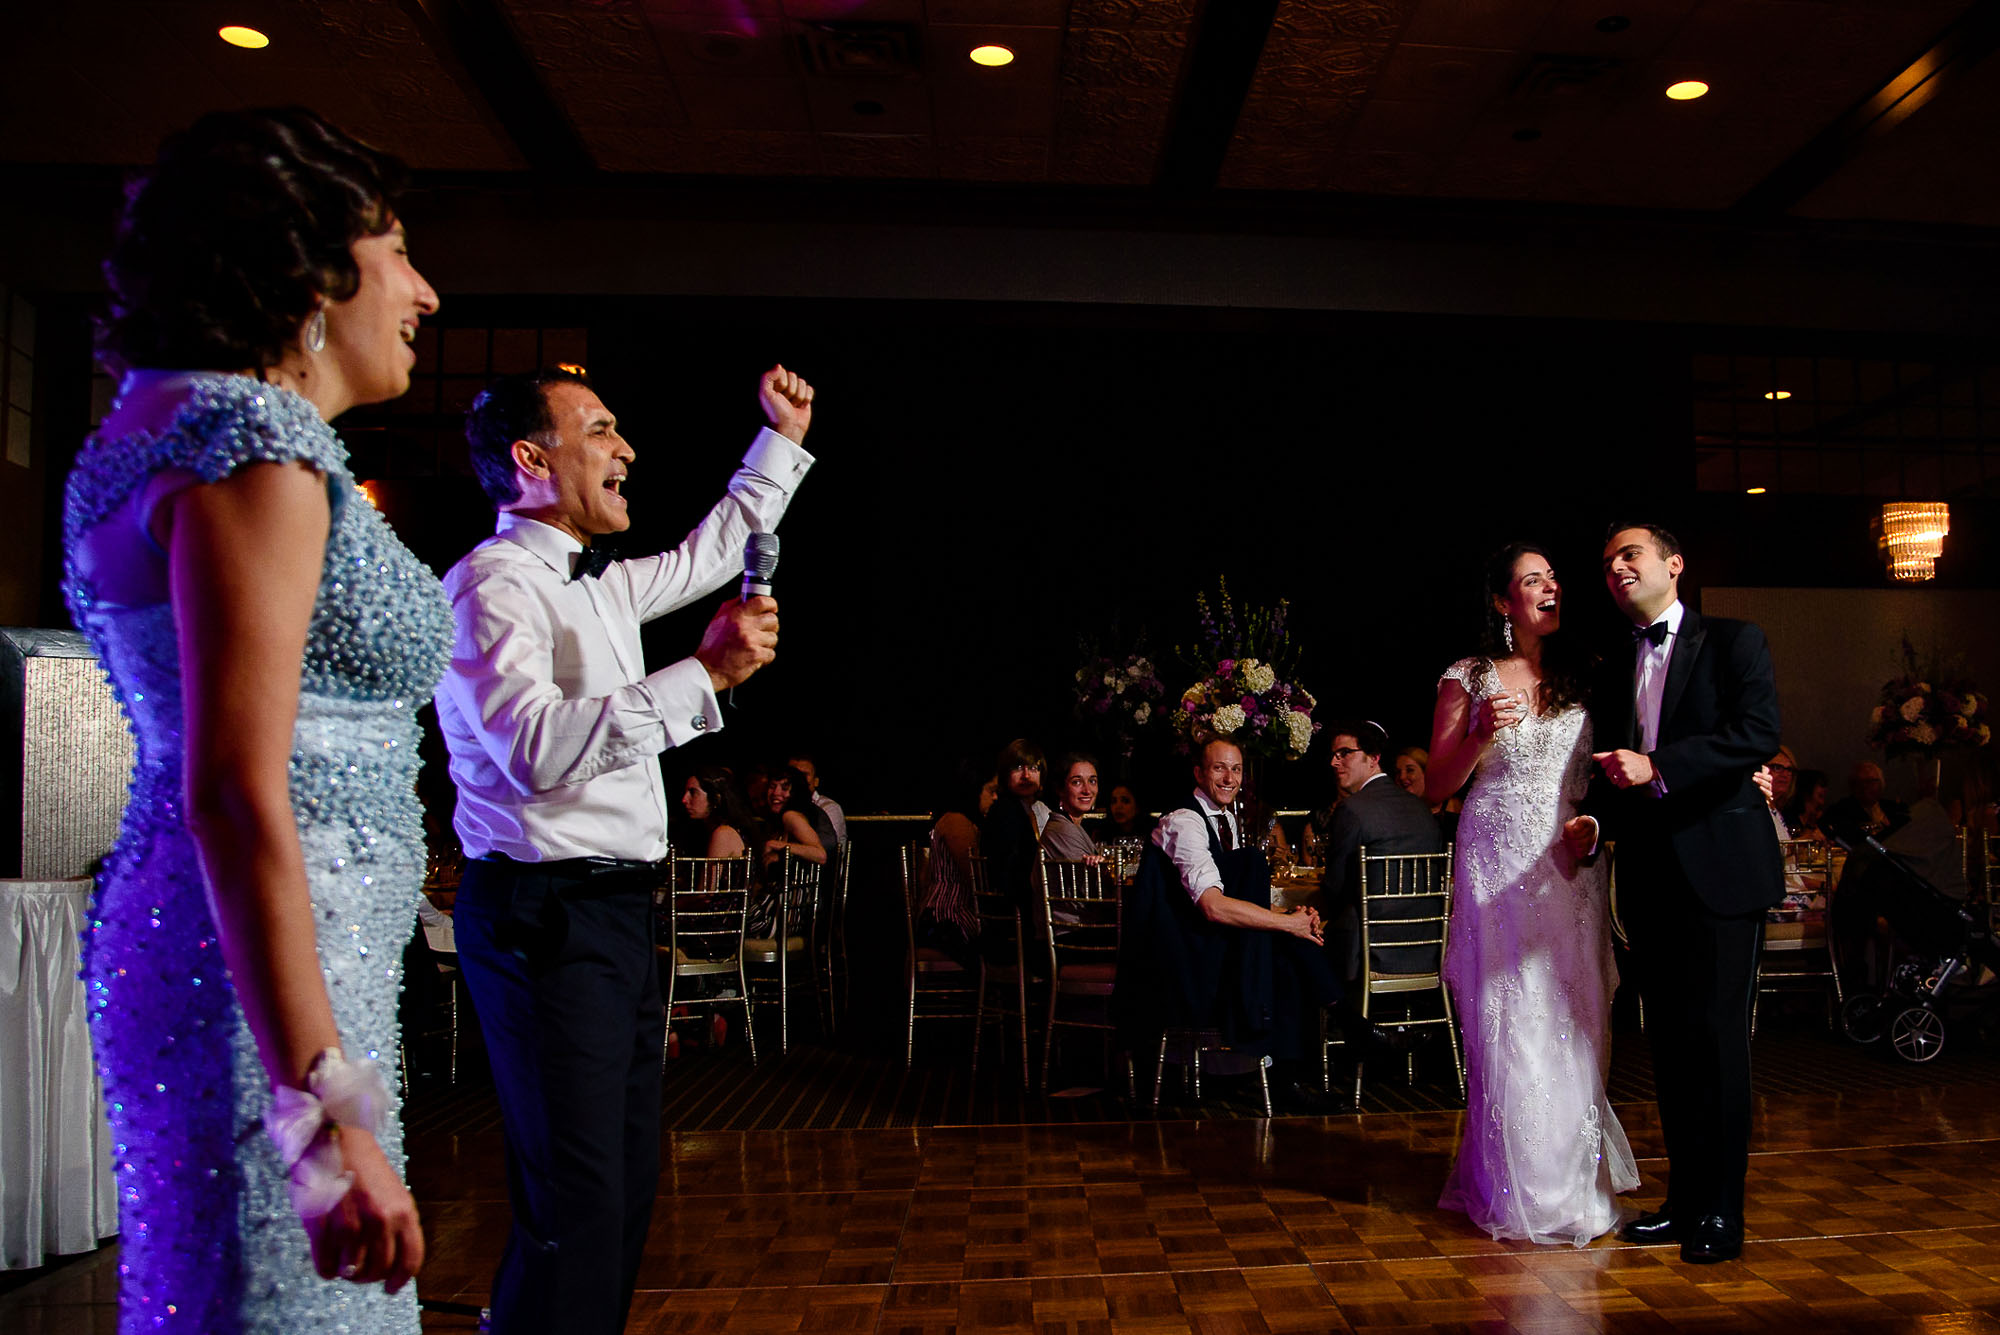 The Sephardic Temple toasts and speeches